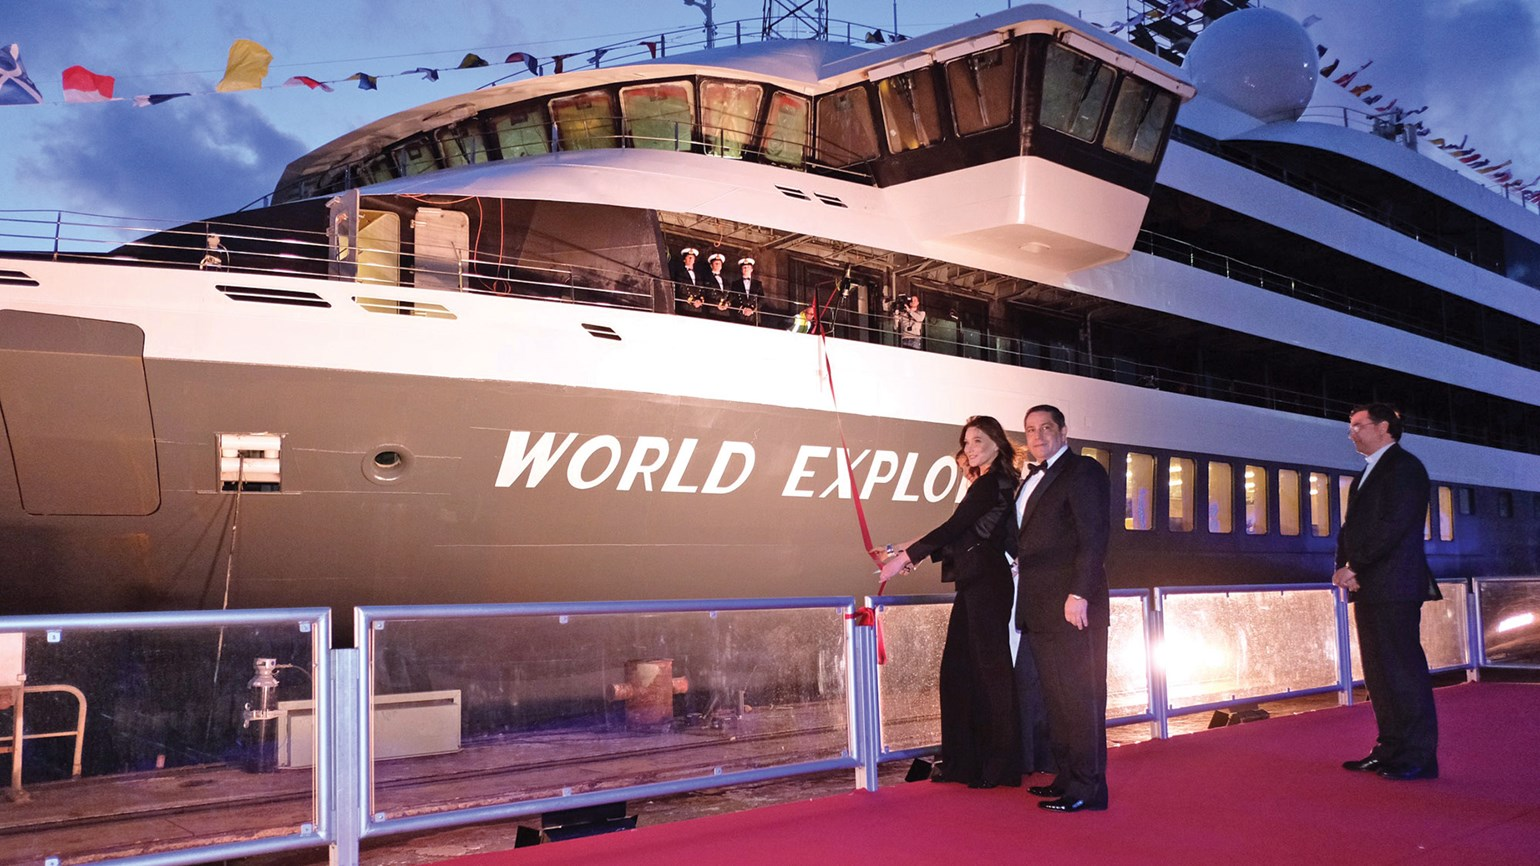 Mystic Cruises to pursue U.S. guests